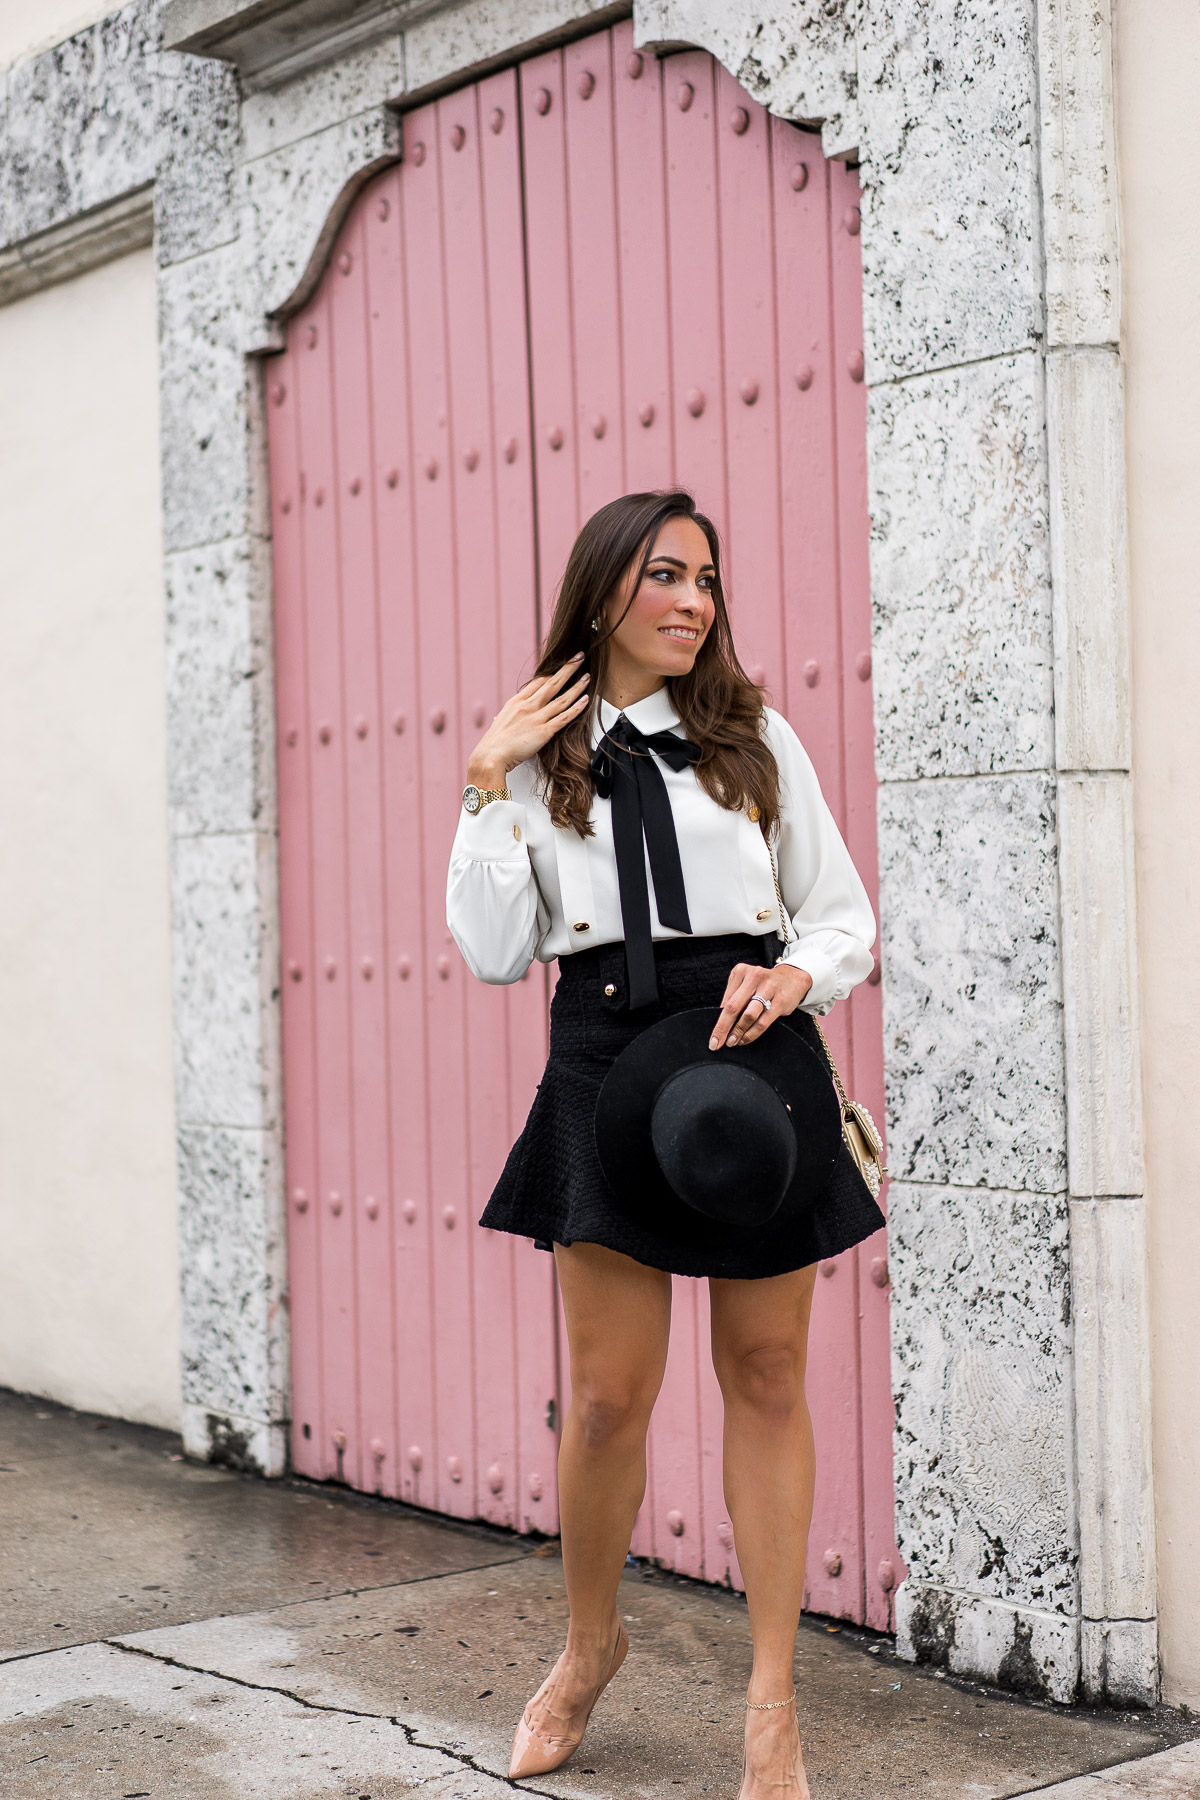 Storets melina tweed mini skirt is worn with bow tie blouse by Amanda of AGlamLifestyle blog at Fort Lauderdale pink door